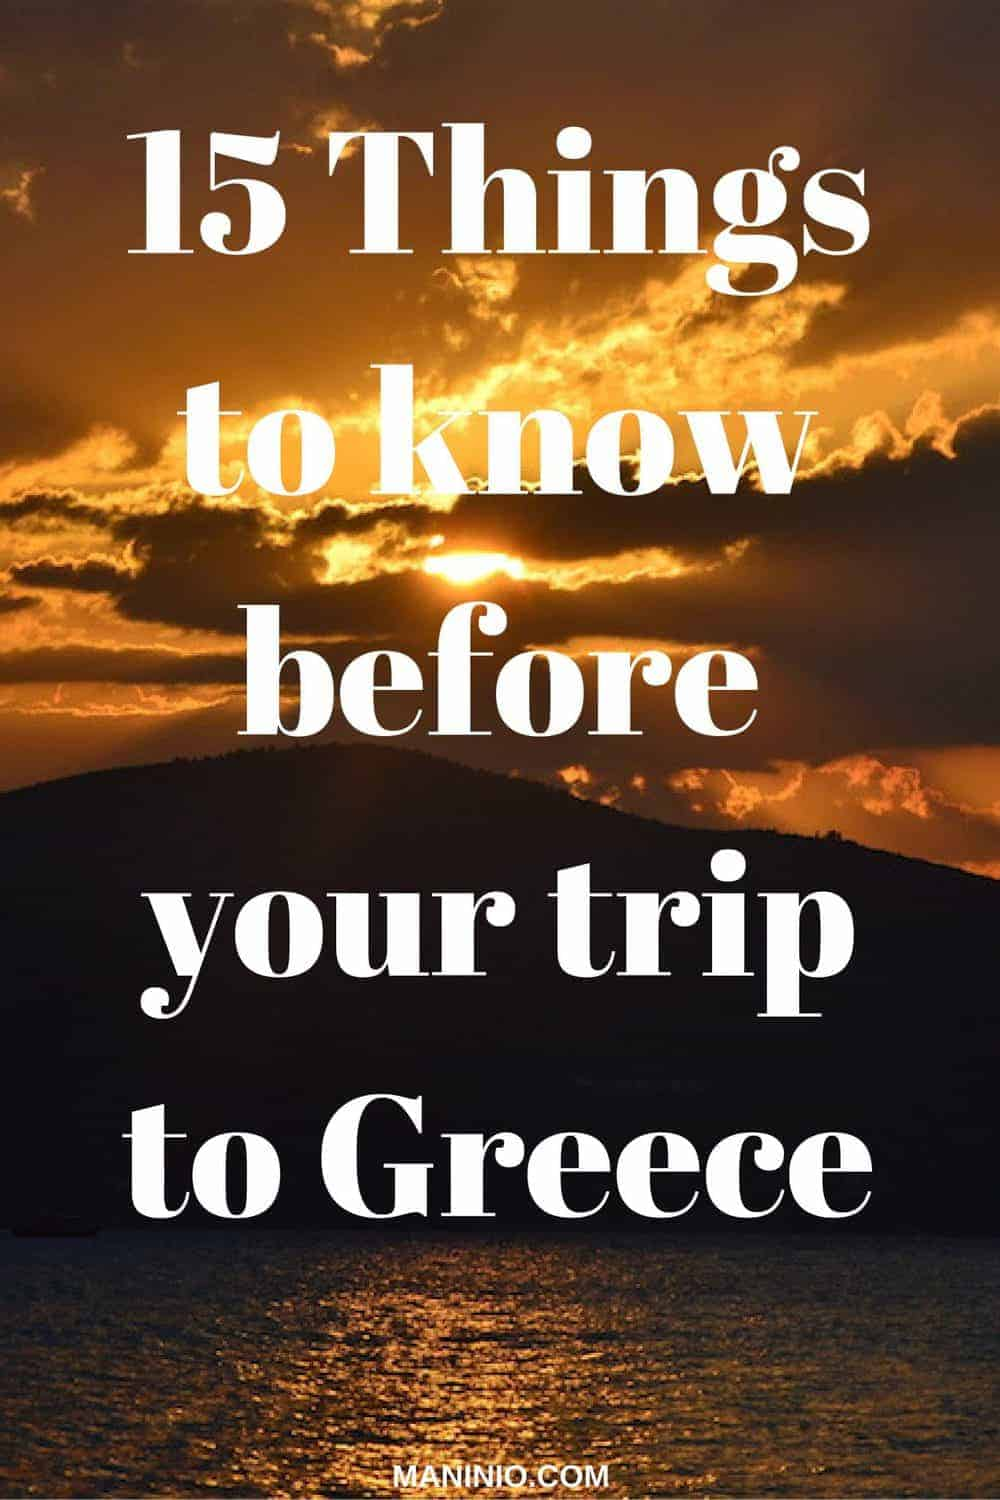 15 Things to know before your trip to Greece pinterest graphic